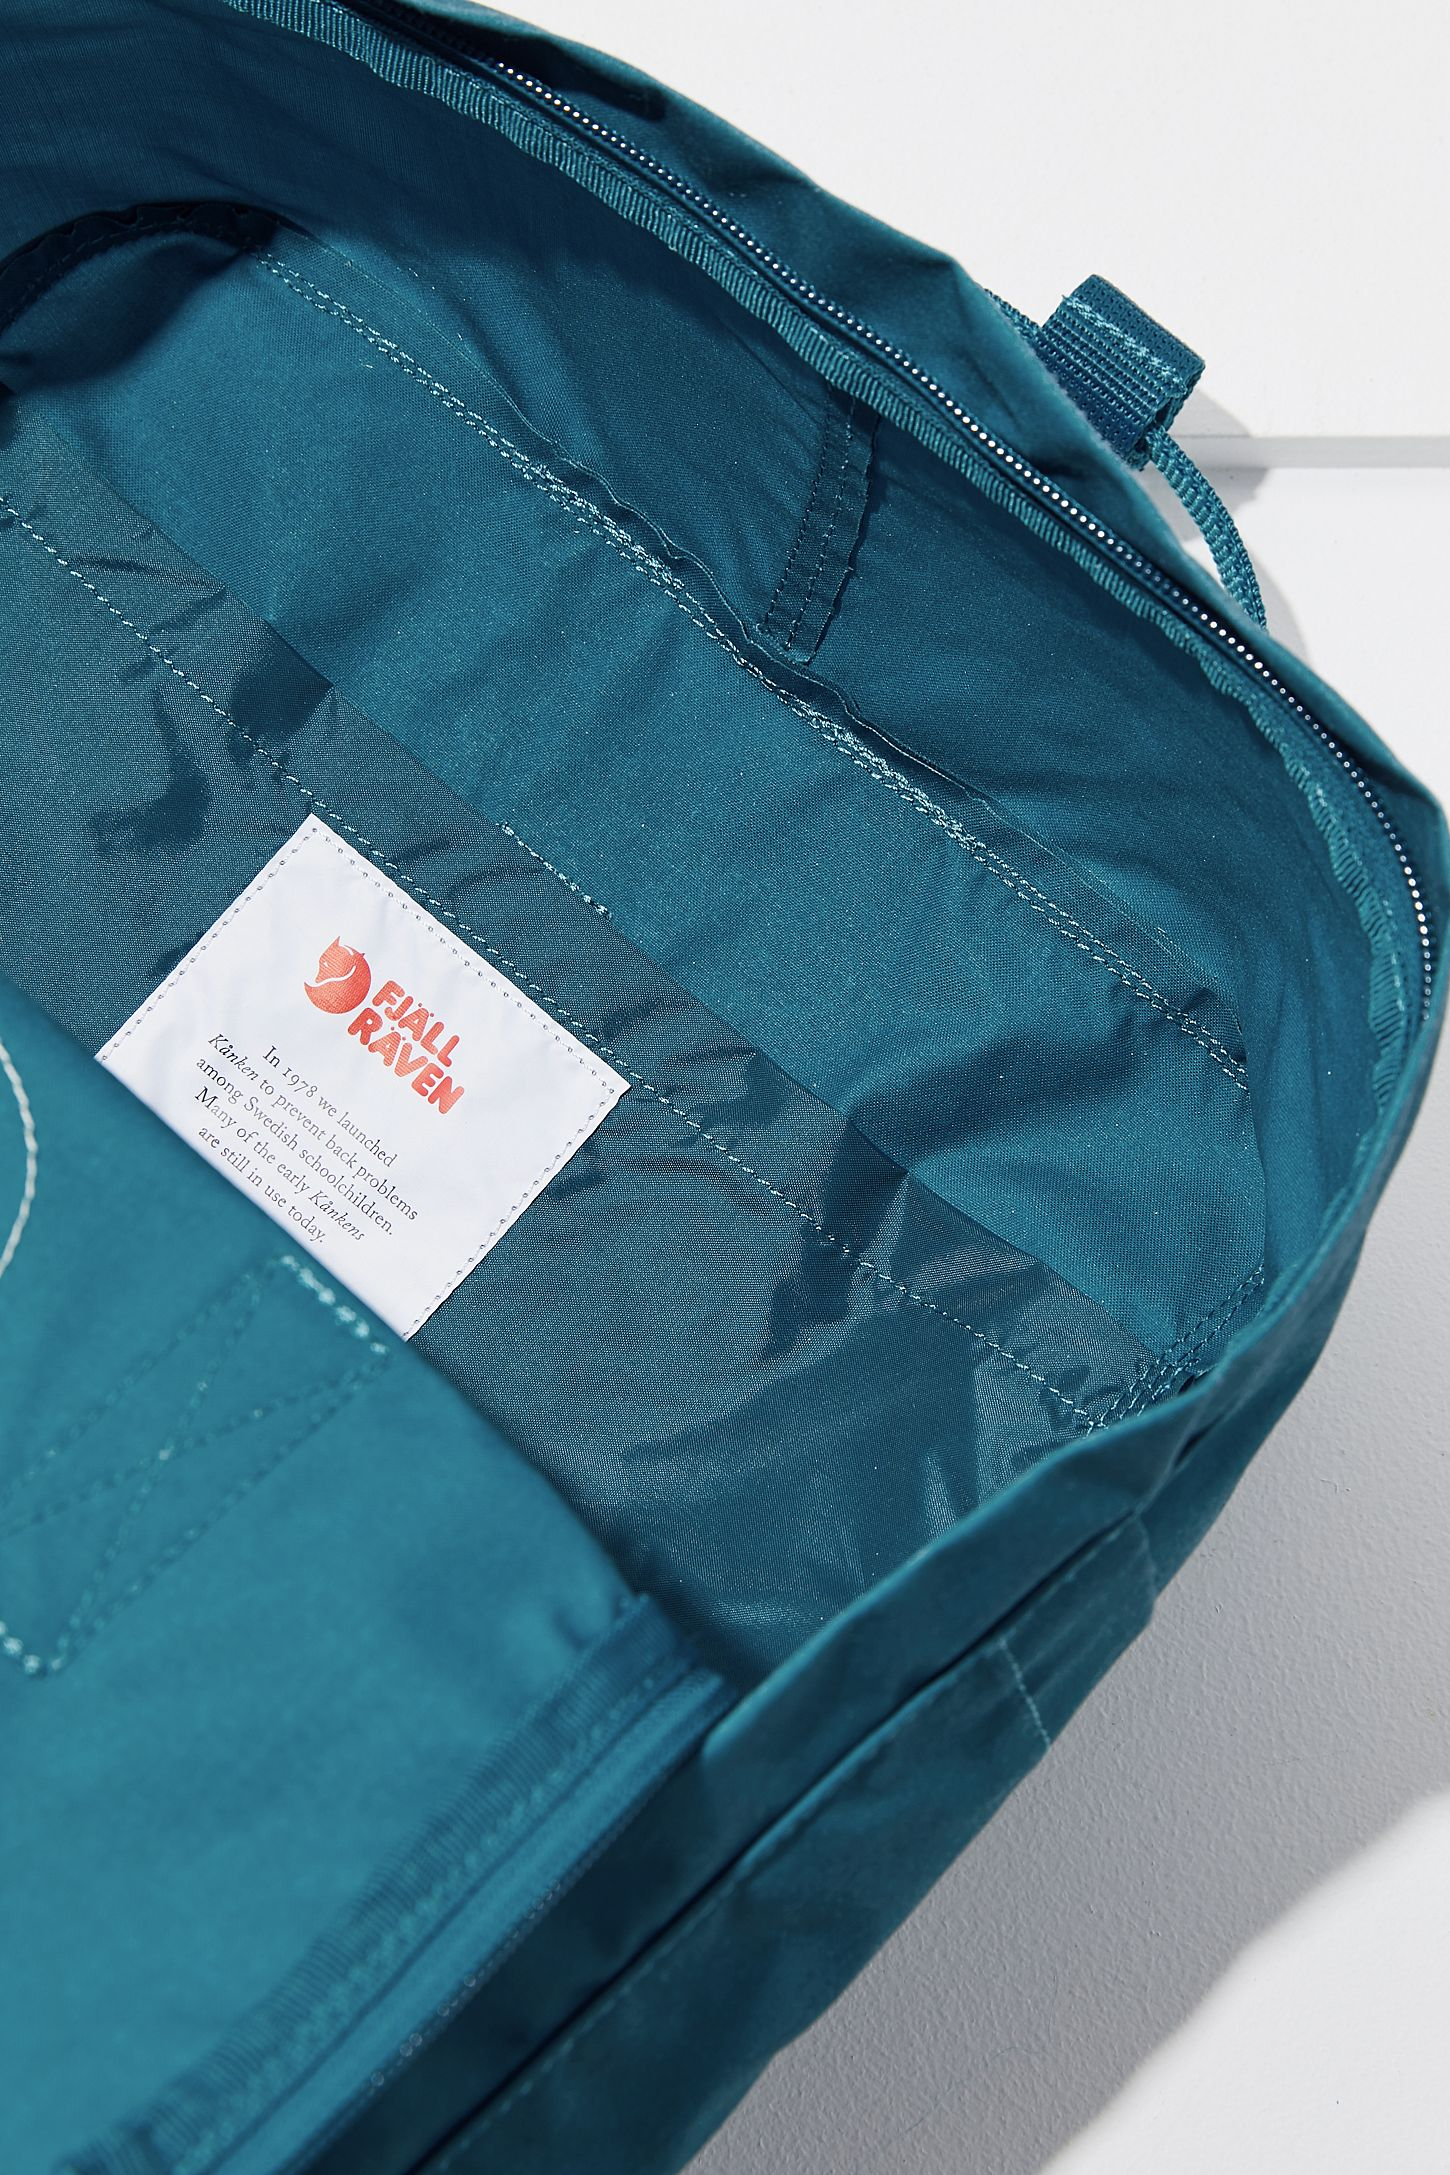 Fjallraven Kanken Backpack Urban Outfitters Classic Royal Blue Pinstripe Pattern Slide View 6